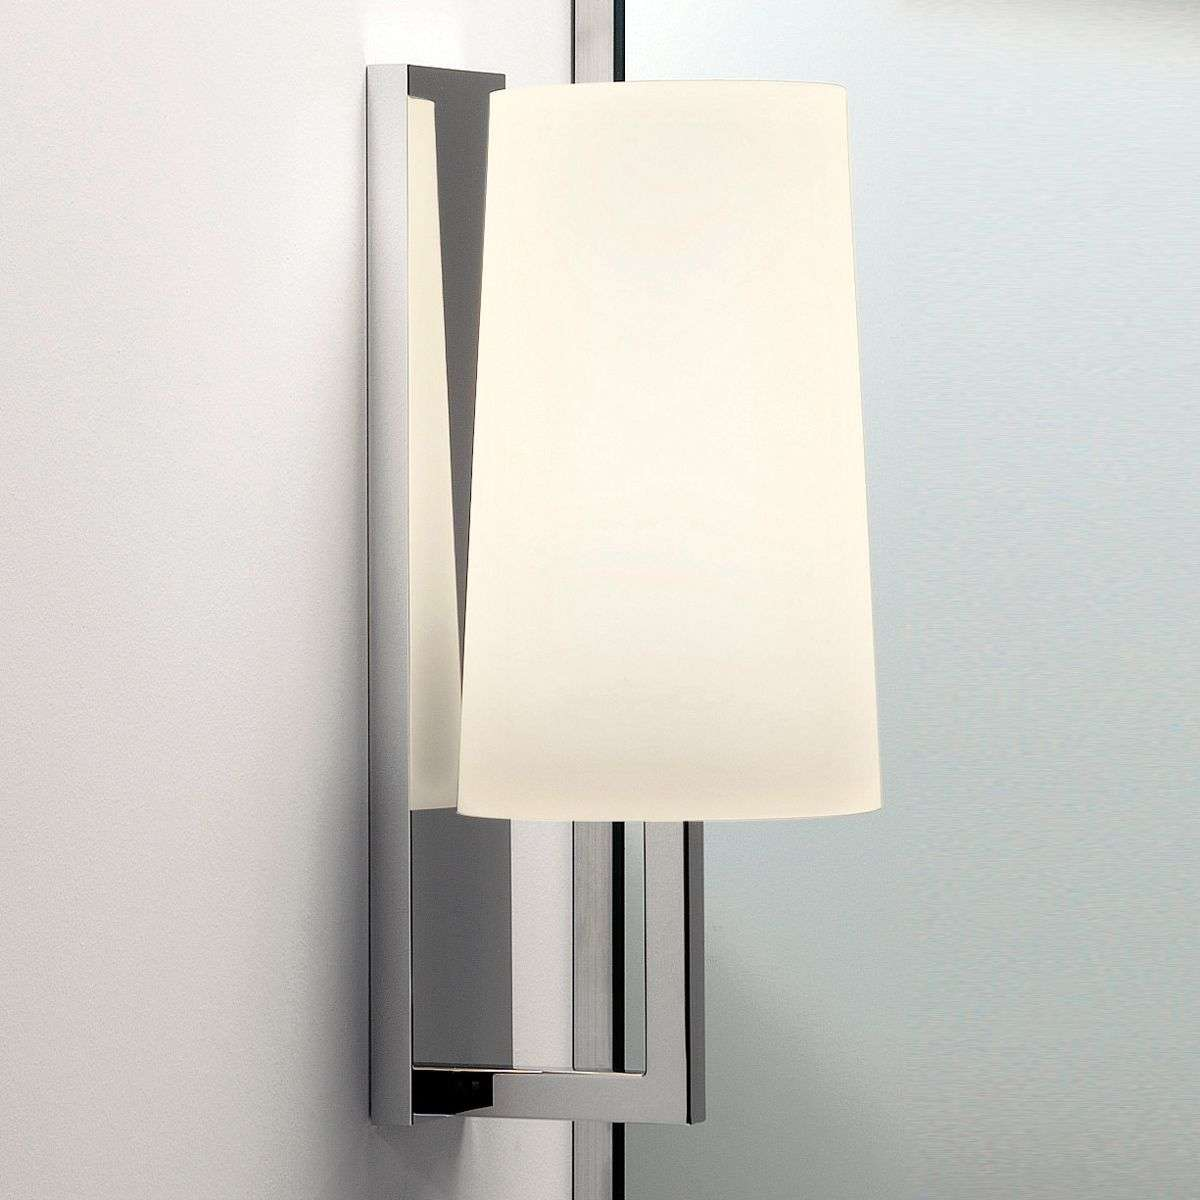 Riva Wall Light Elegant-1020405-31